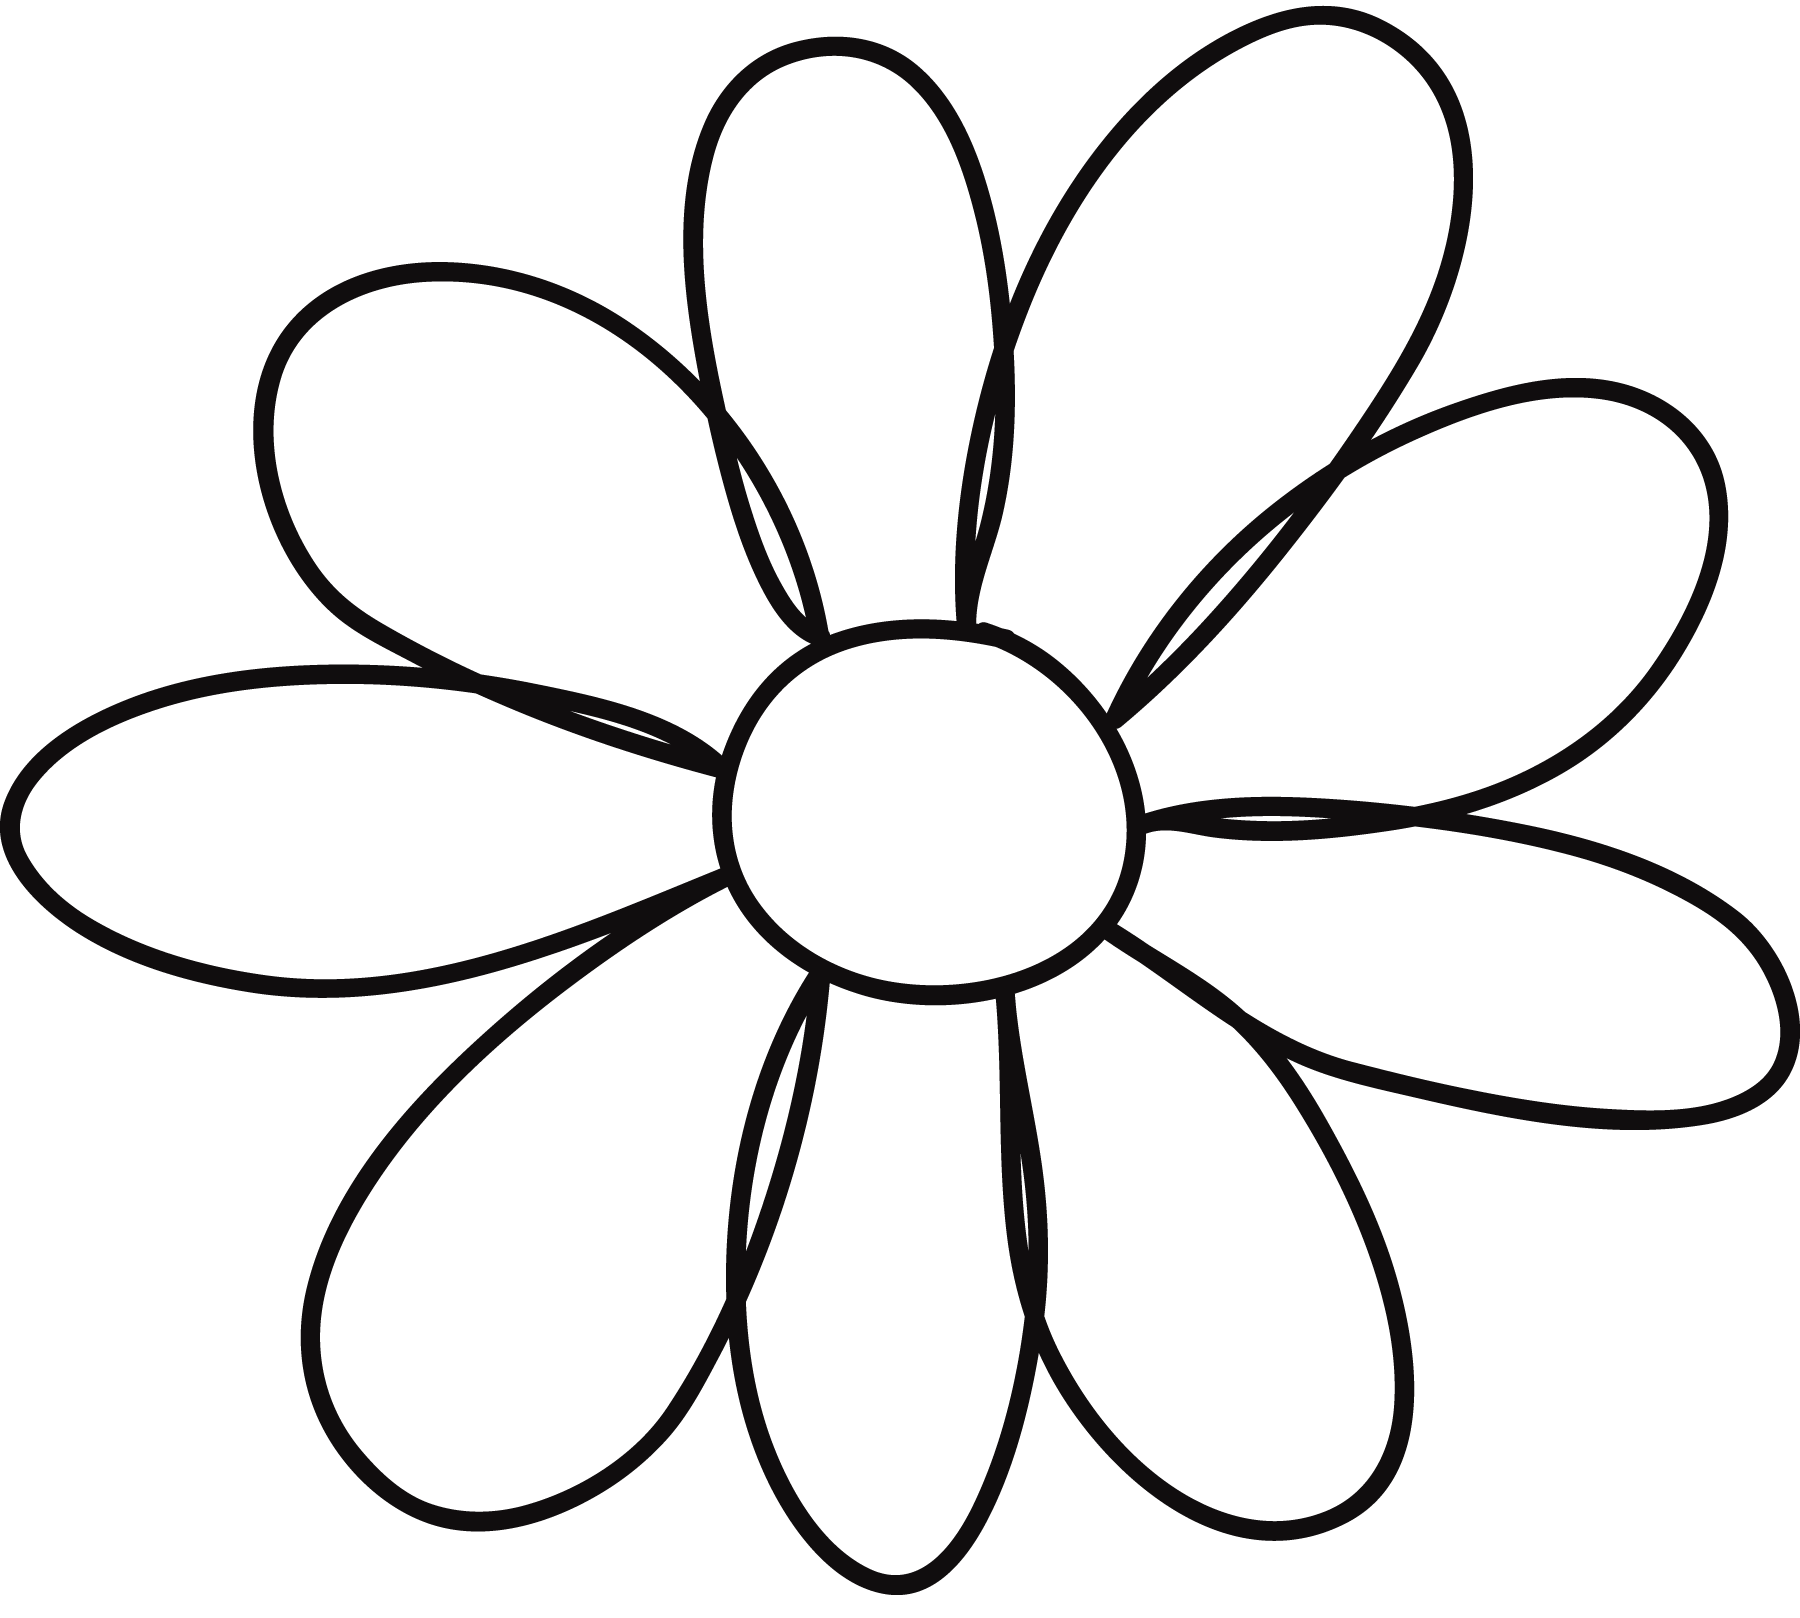 Petal drawing flying petals. Flower template clipart